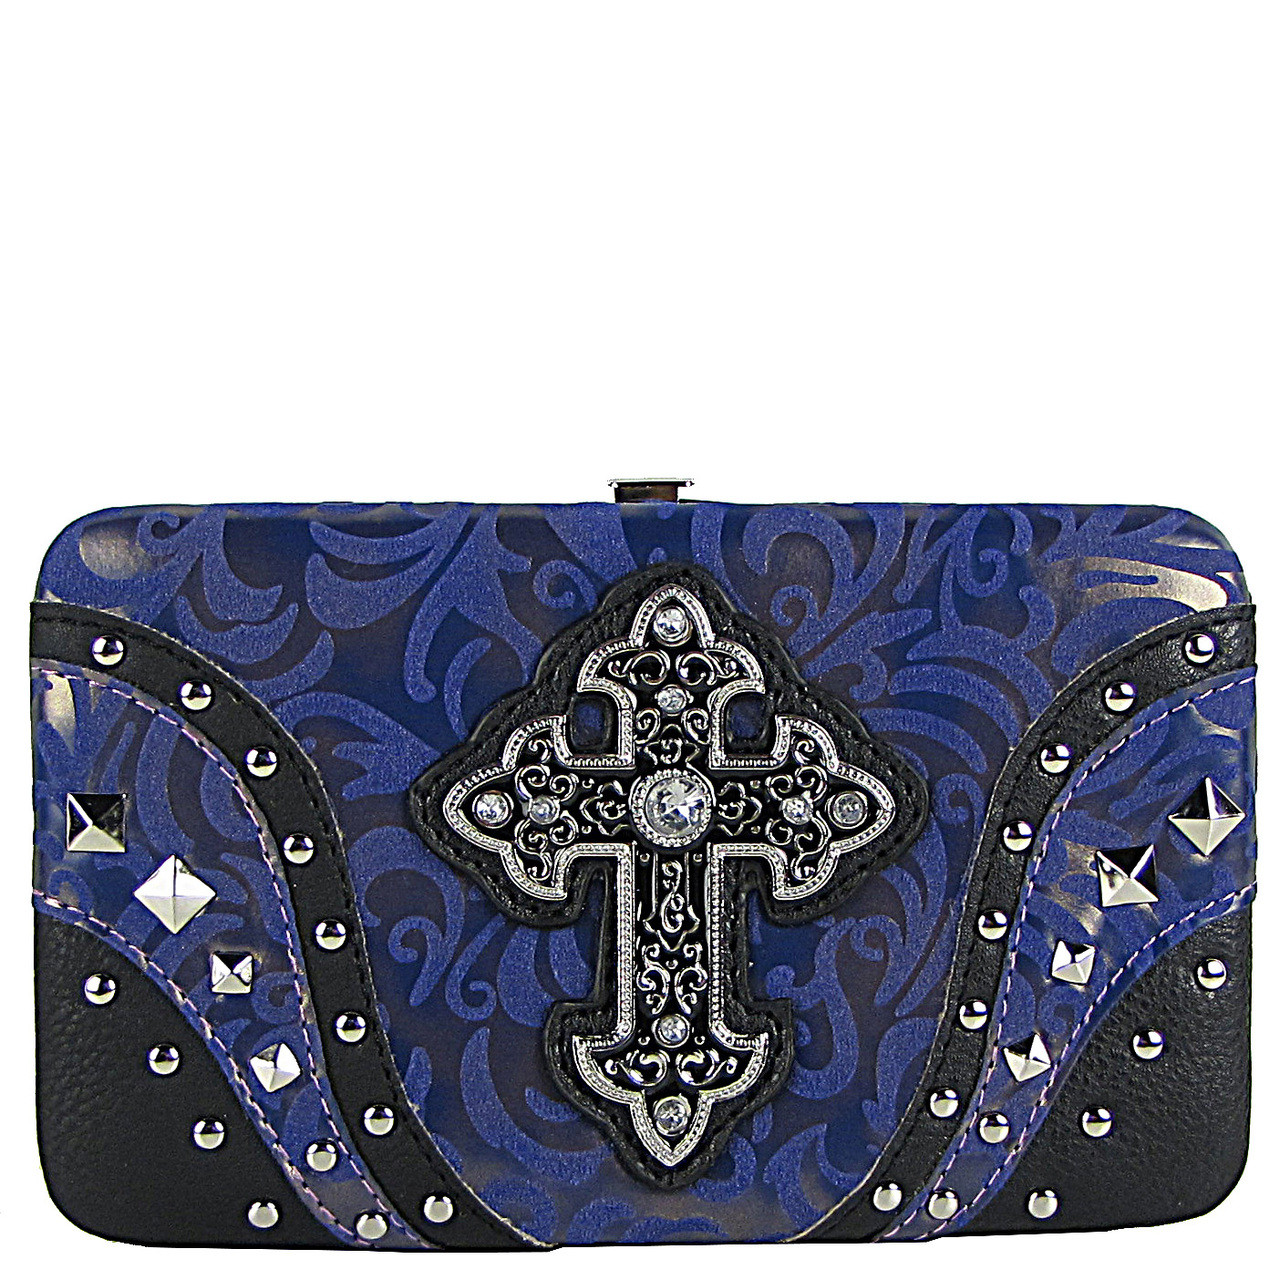 PURPLE STUDDED RHINESTONE TOOLED CROSS LOOK FLAT THICK WALLET FW2-04113PPL